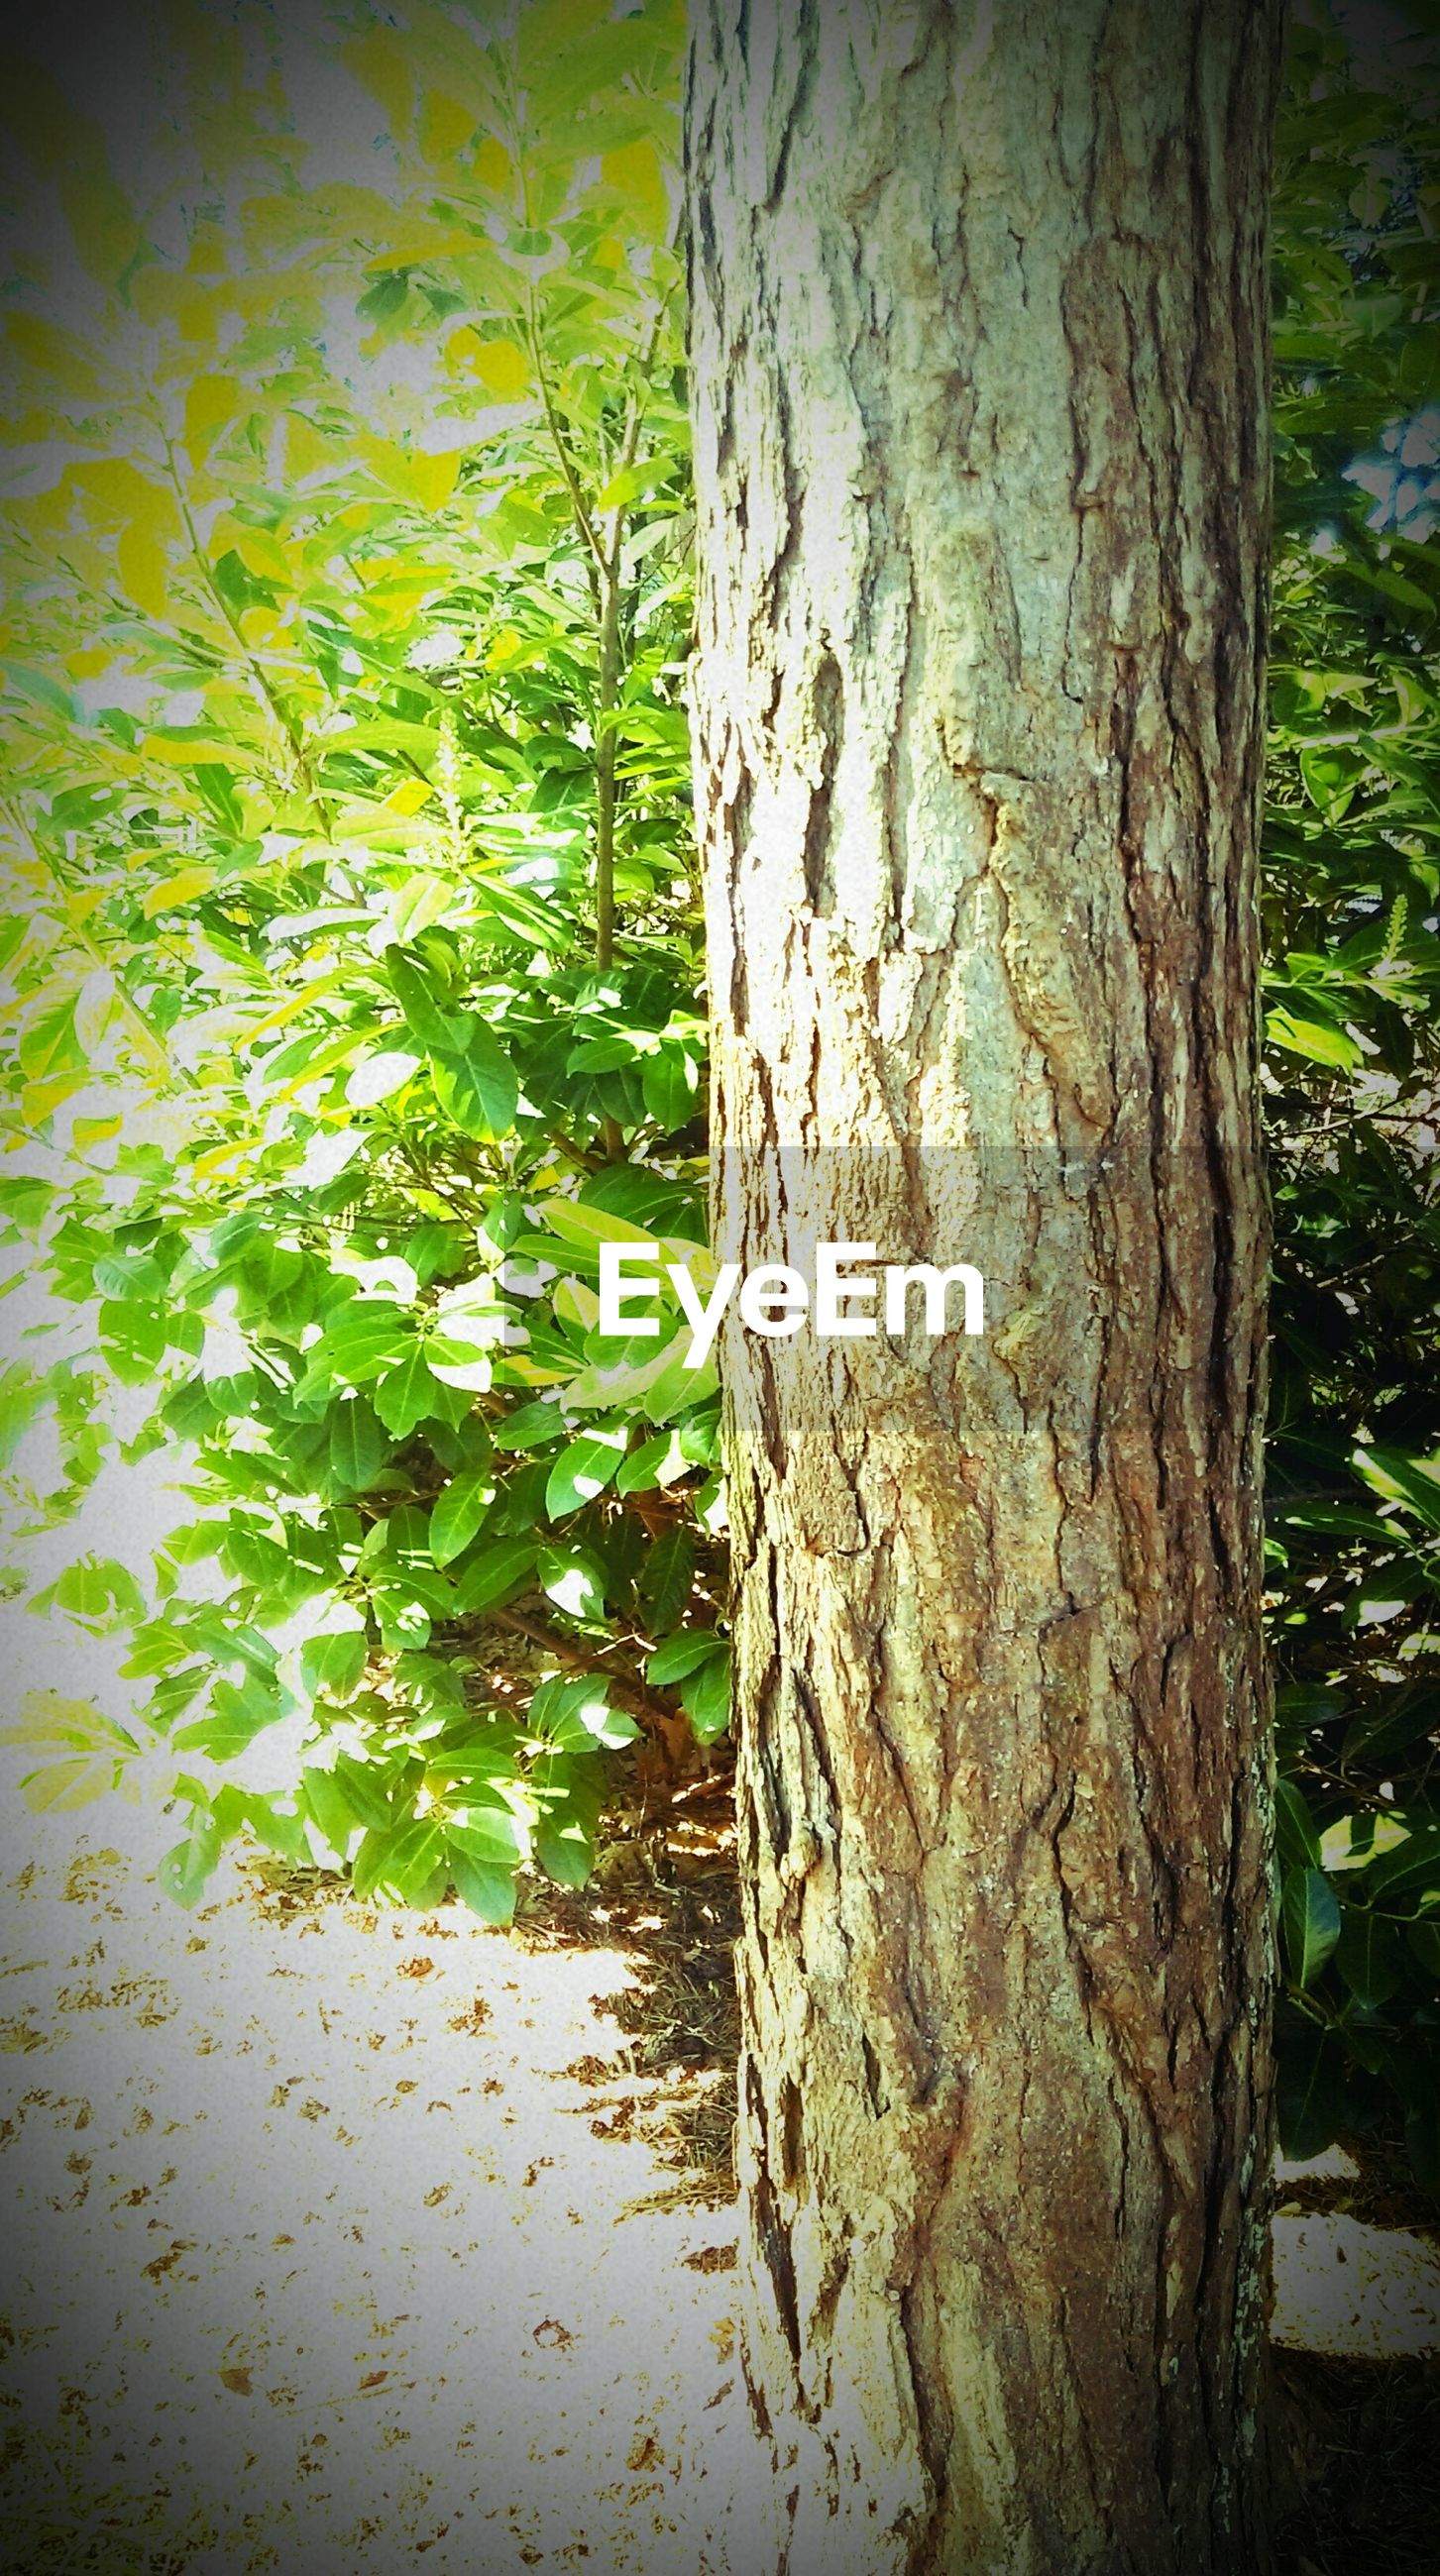 tree trunk, tree, growth, nature, textured, tranquility, forest, bark, day, no people, green color, sunlight, outdoors, wood - material, close-up, beauty in nature, branch, growing, rough, tranquil scene